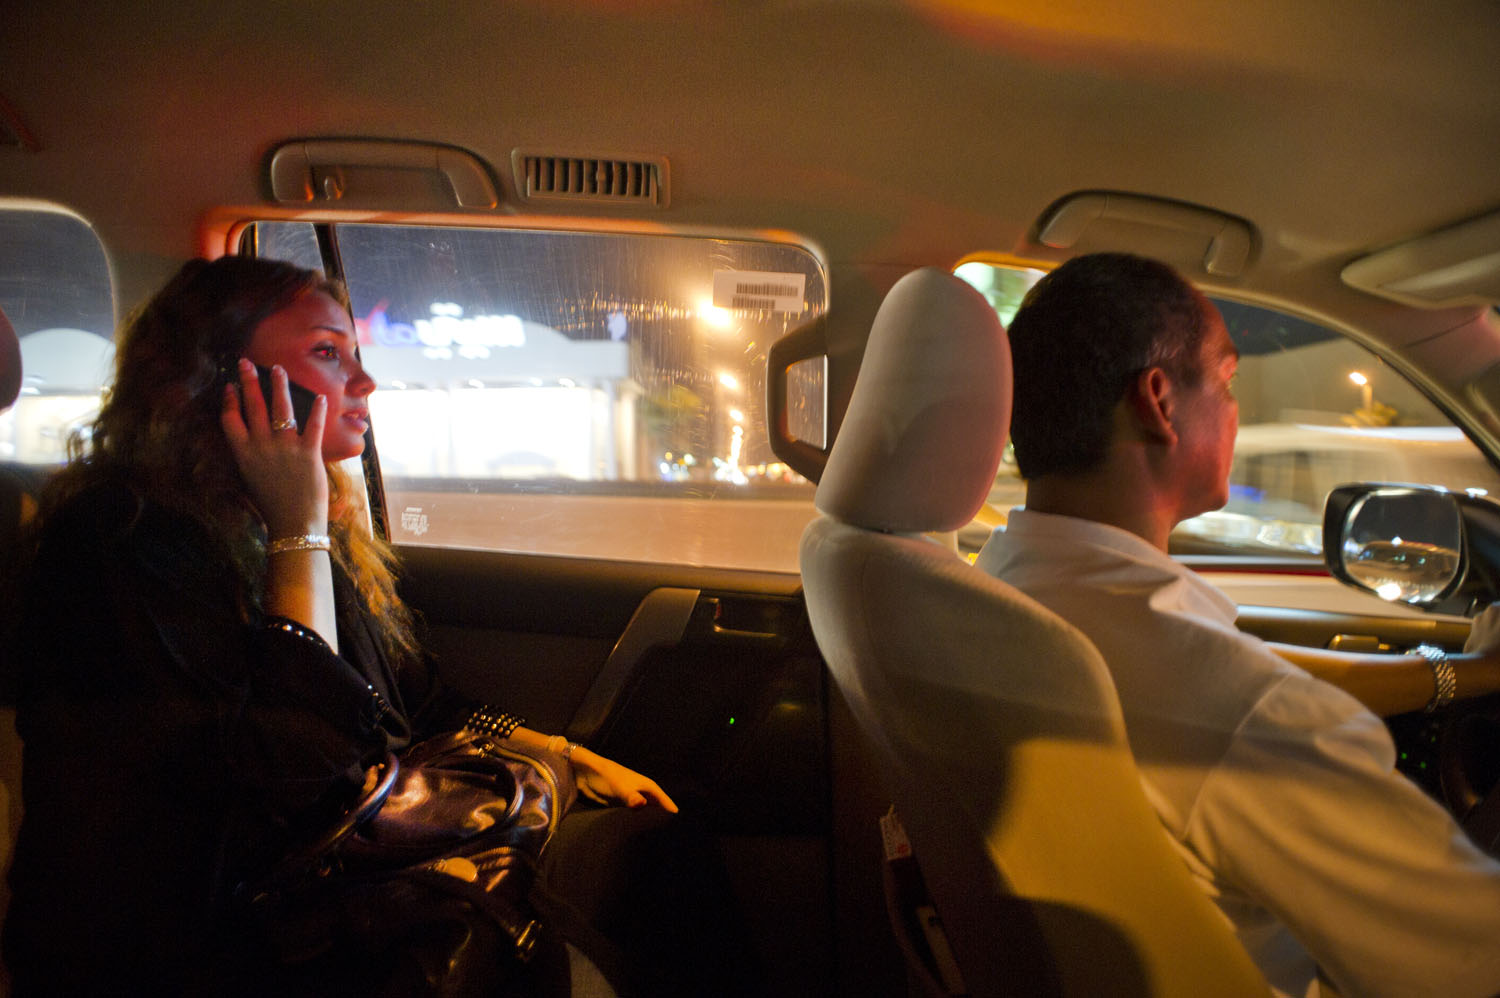 A Saudi woman talks on the phone as she is driven by a driver out for the evening in Jeddah, Saudi Arabia, June 16, 2011. On June 17, a group of Saudi women have called for a nation-wide challenge to the ban on women drivers across the country.